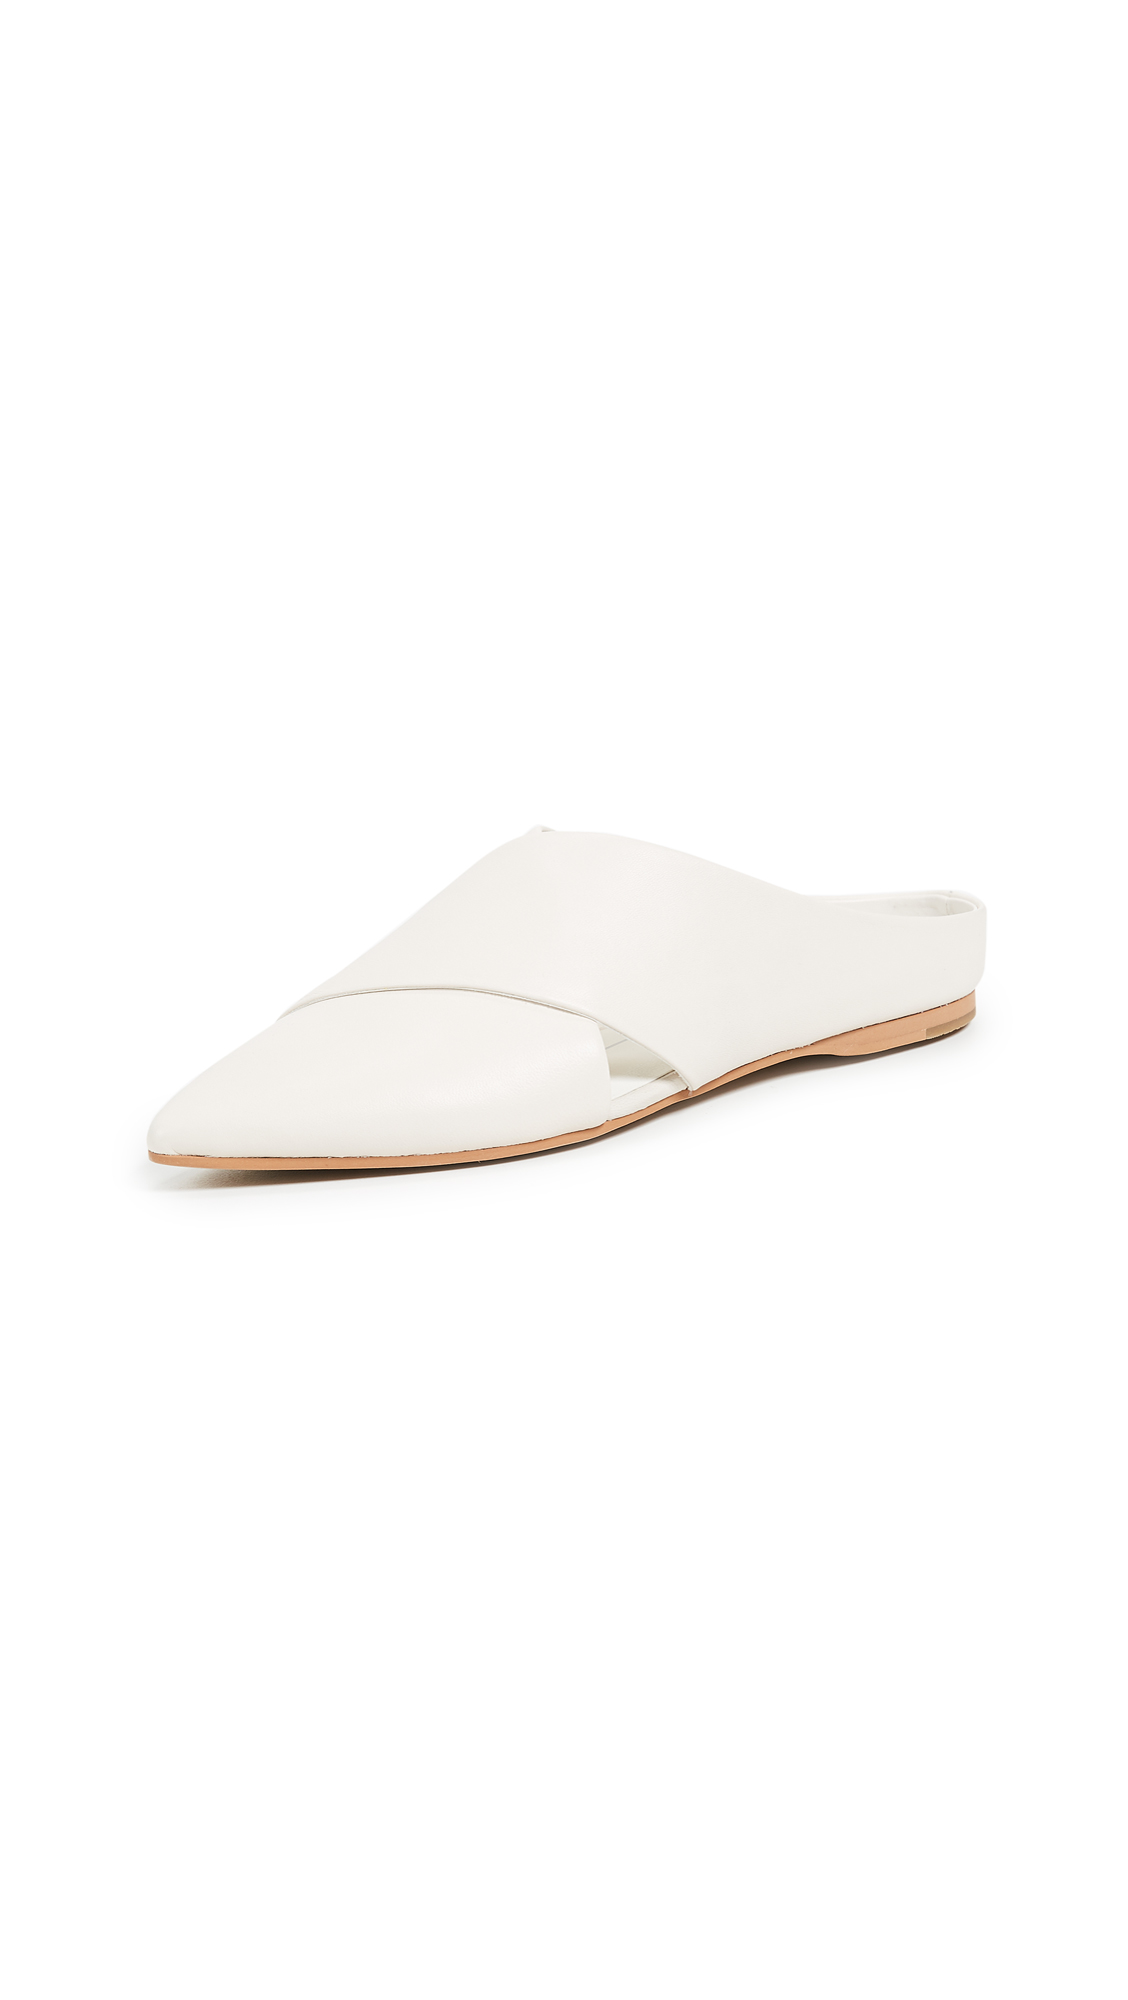 Dolce Vita Camia Point Toe Mules - Ivory